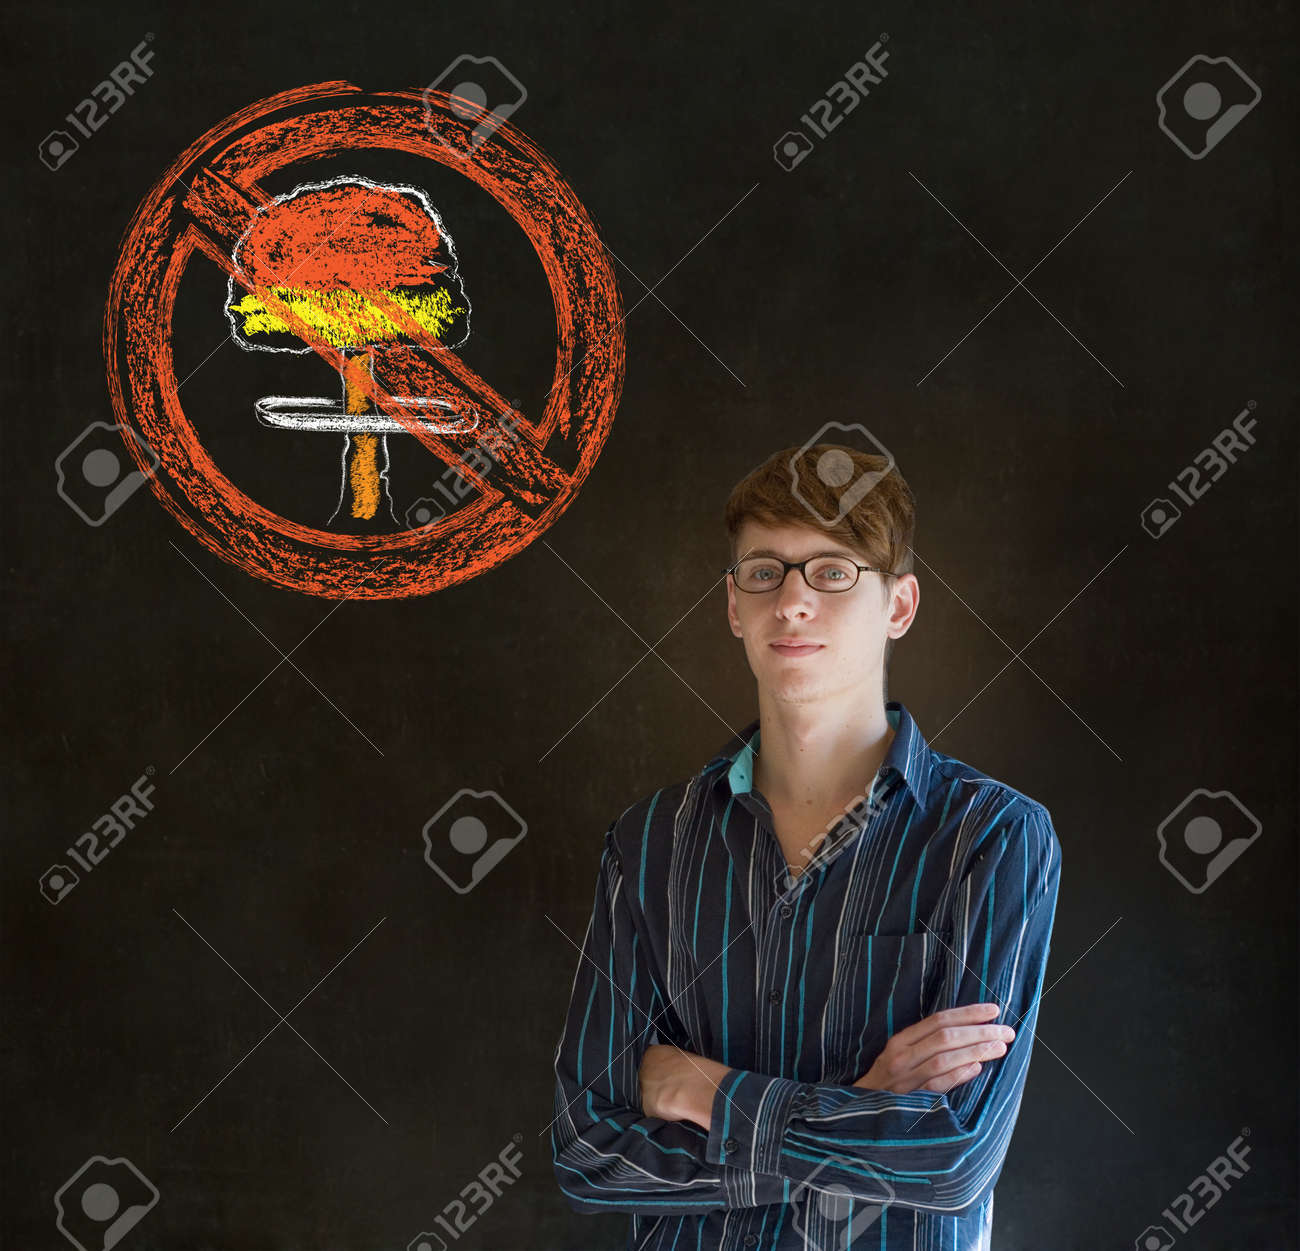 Business man, student, teacher or politician no nuclear bombs war pacifist thought thinking chalk cloud on blackboard background Stock Photo - 19286655